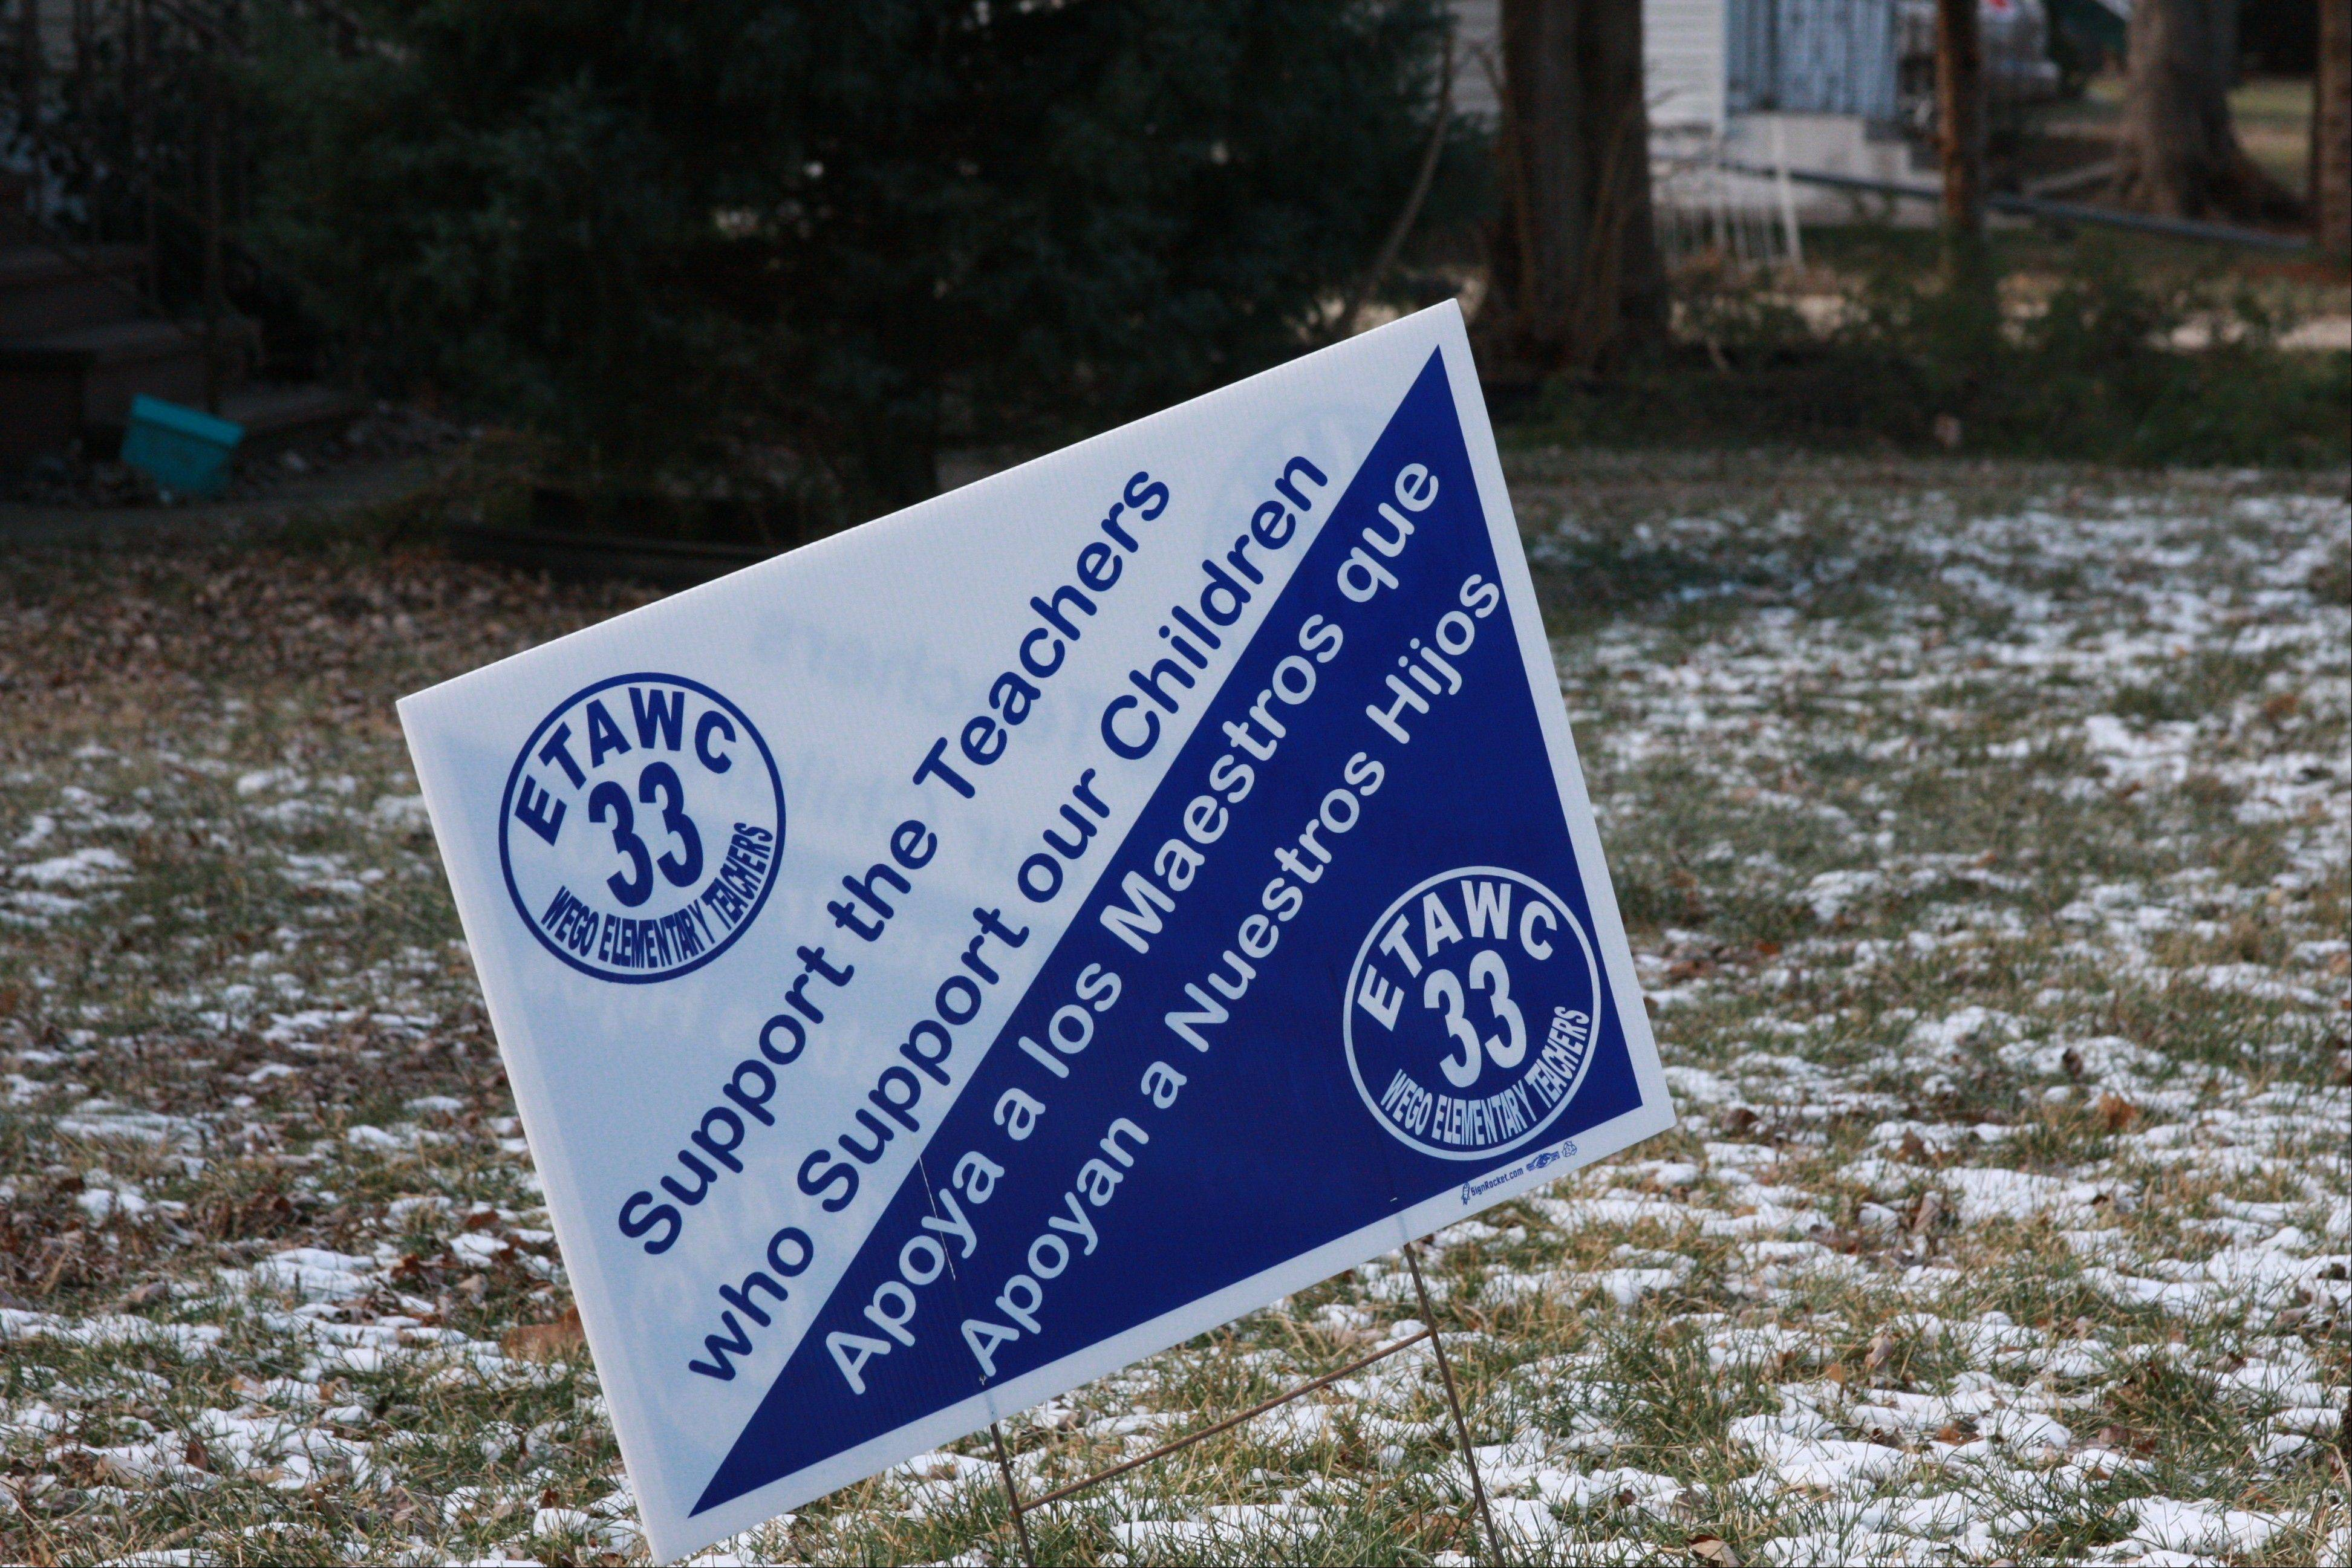 Signs supporting West Chicago Elementary District 33 teachers in their contract talks with the school board have been up for weeks in some yards.